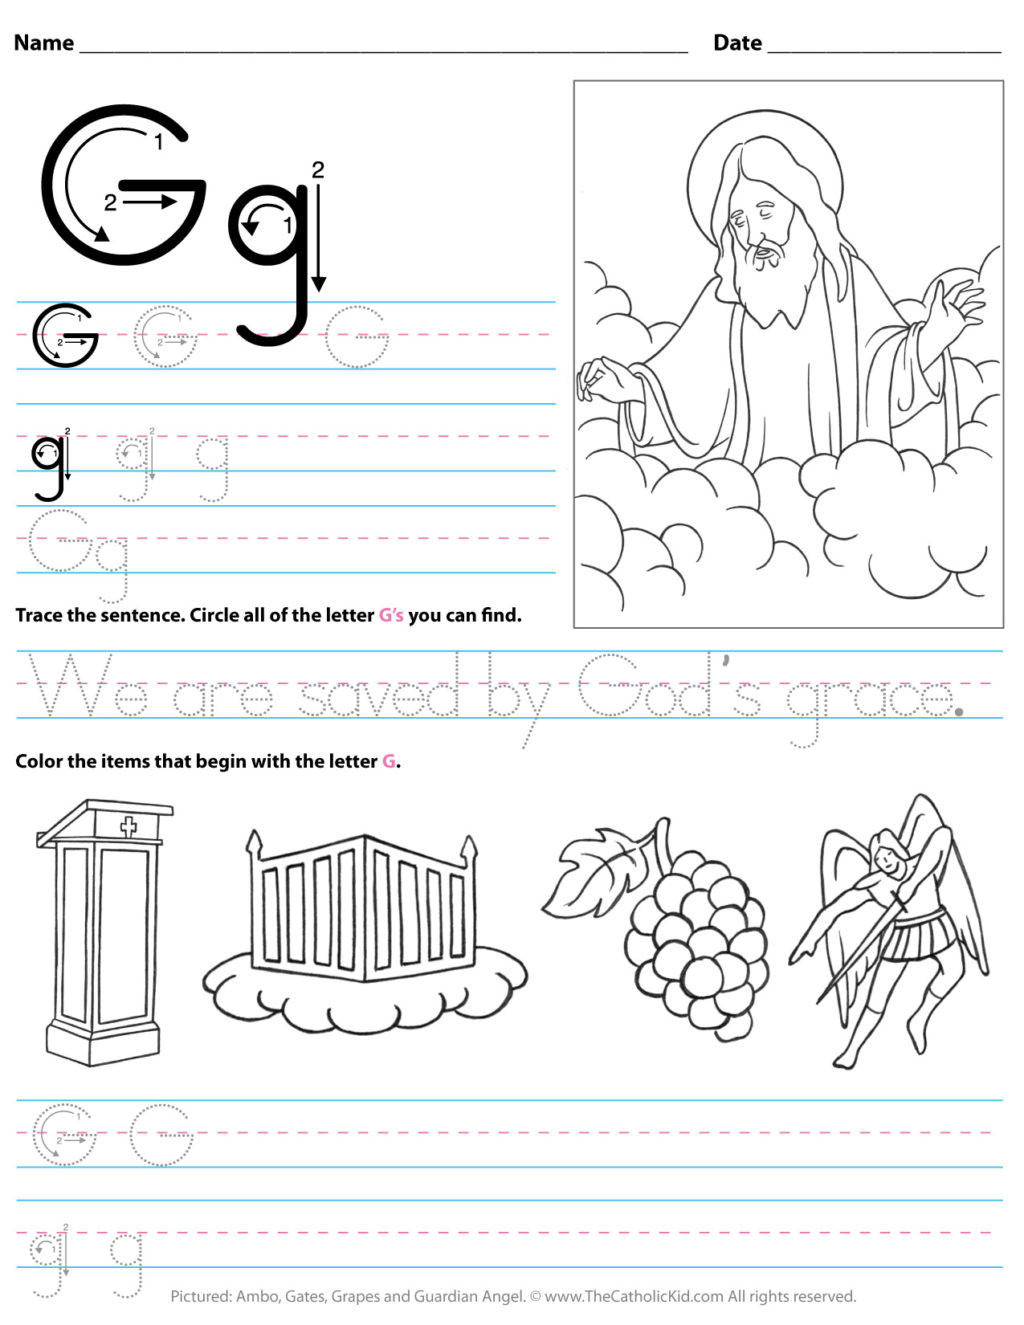 Letter G Worksheet Preschool Worksheet Working Sheets forlers Image Inspirations